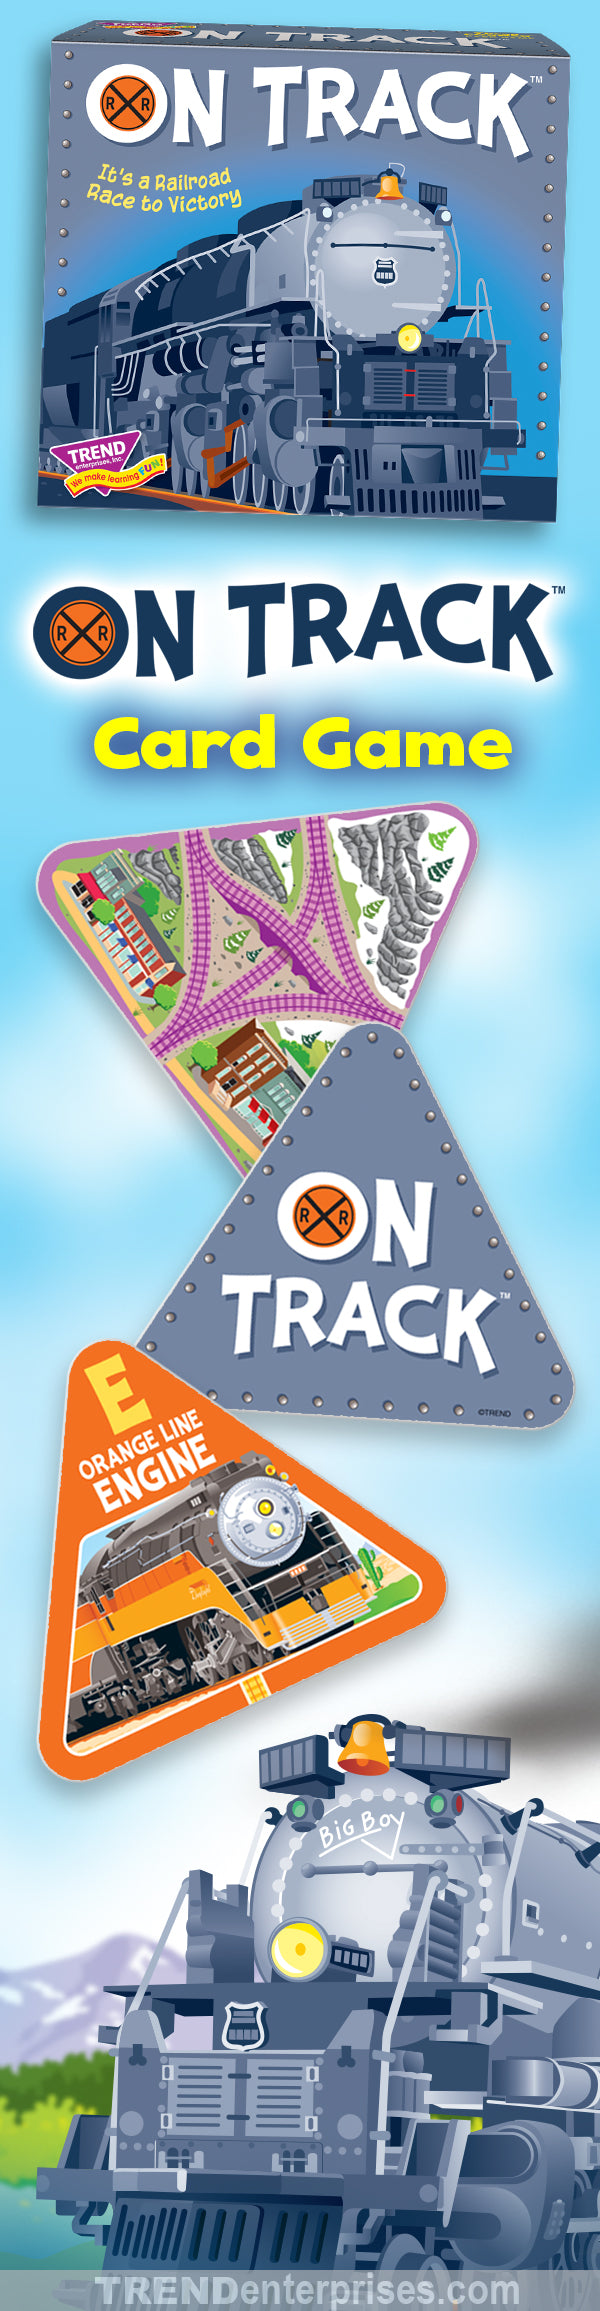 On Track Three Corner Card Game is fun for the whole family! It's a Railroad Race to Victory. Tip your hat to history and ride the rails to victory. It'll take concentration, a competitive spirit, and a bit of luck to triumph in this award-winning card game.  Ages 8 to Adult • 2–4 Players • 30–60 Minutes